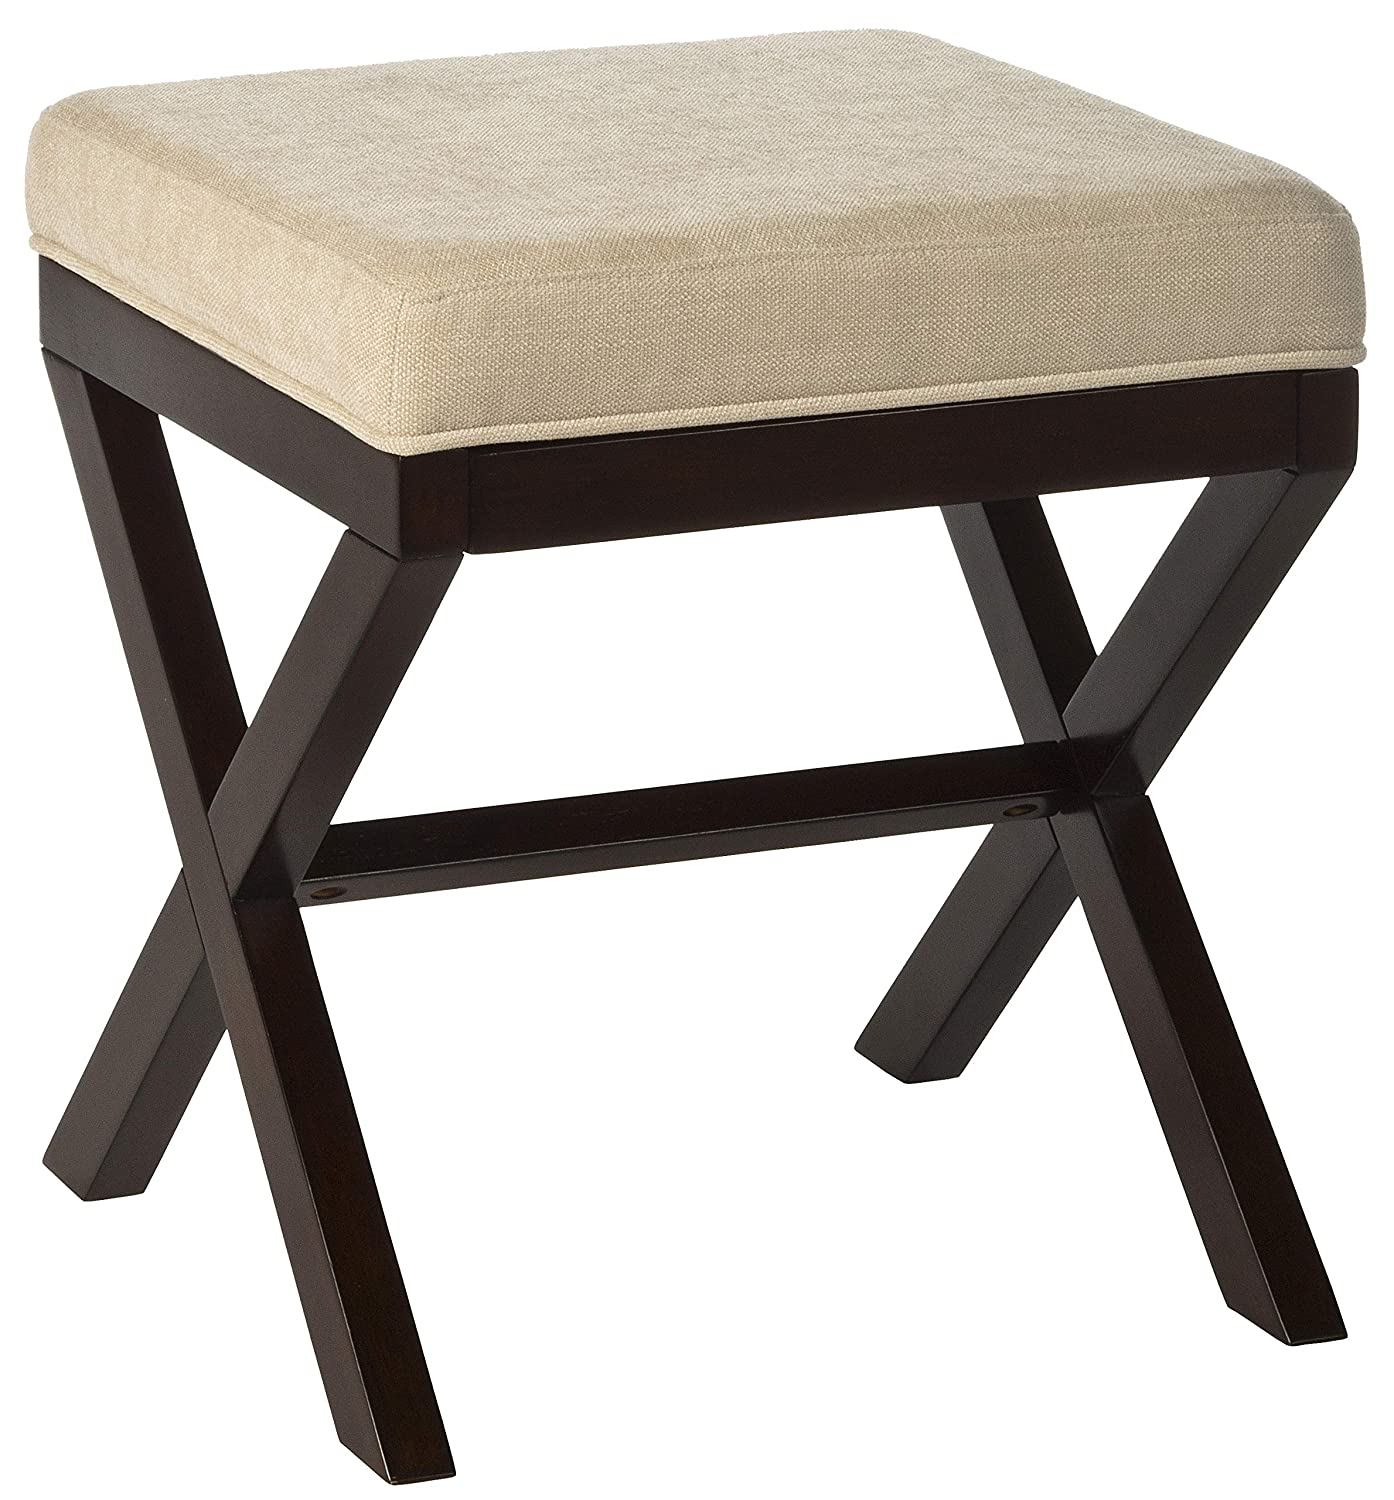 Awesome Morgan Wood And Upholstered Backless Vanity Stool Espresso Gmtry Best Dining Table And Chair Ideas Images Gmtryco